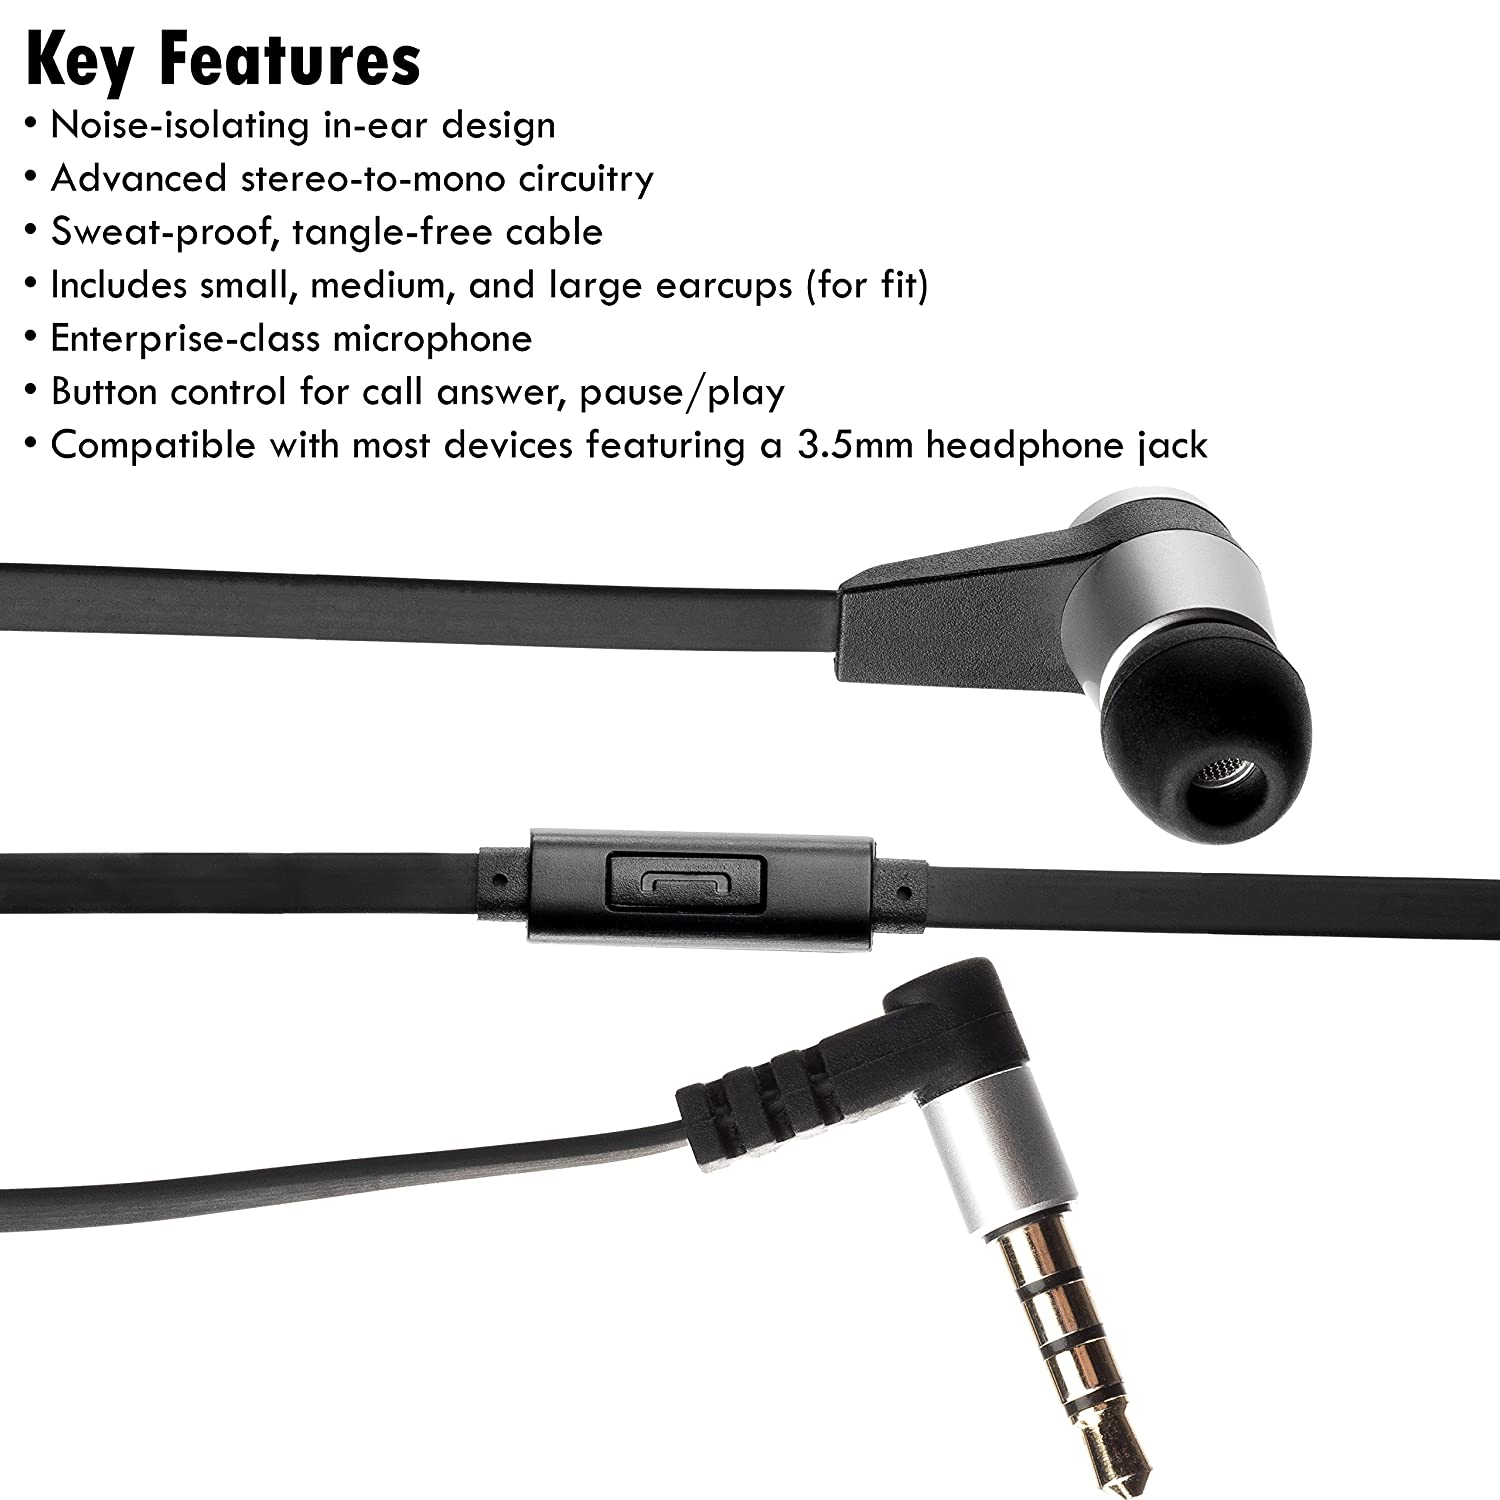 Amazon.com: Single Earbud Stereo-to-Mono Headphone w/Mic (Black ...